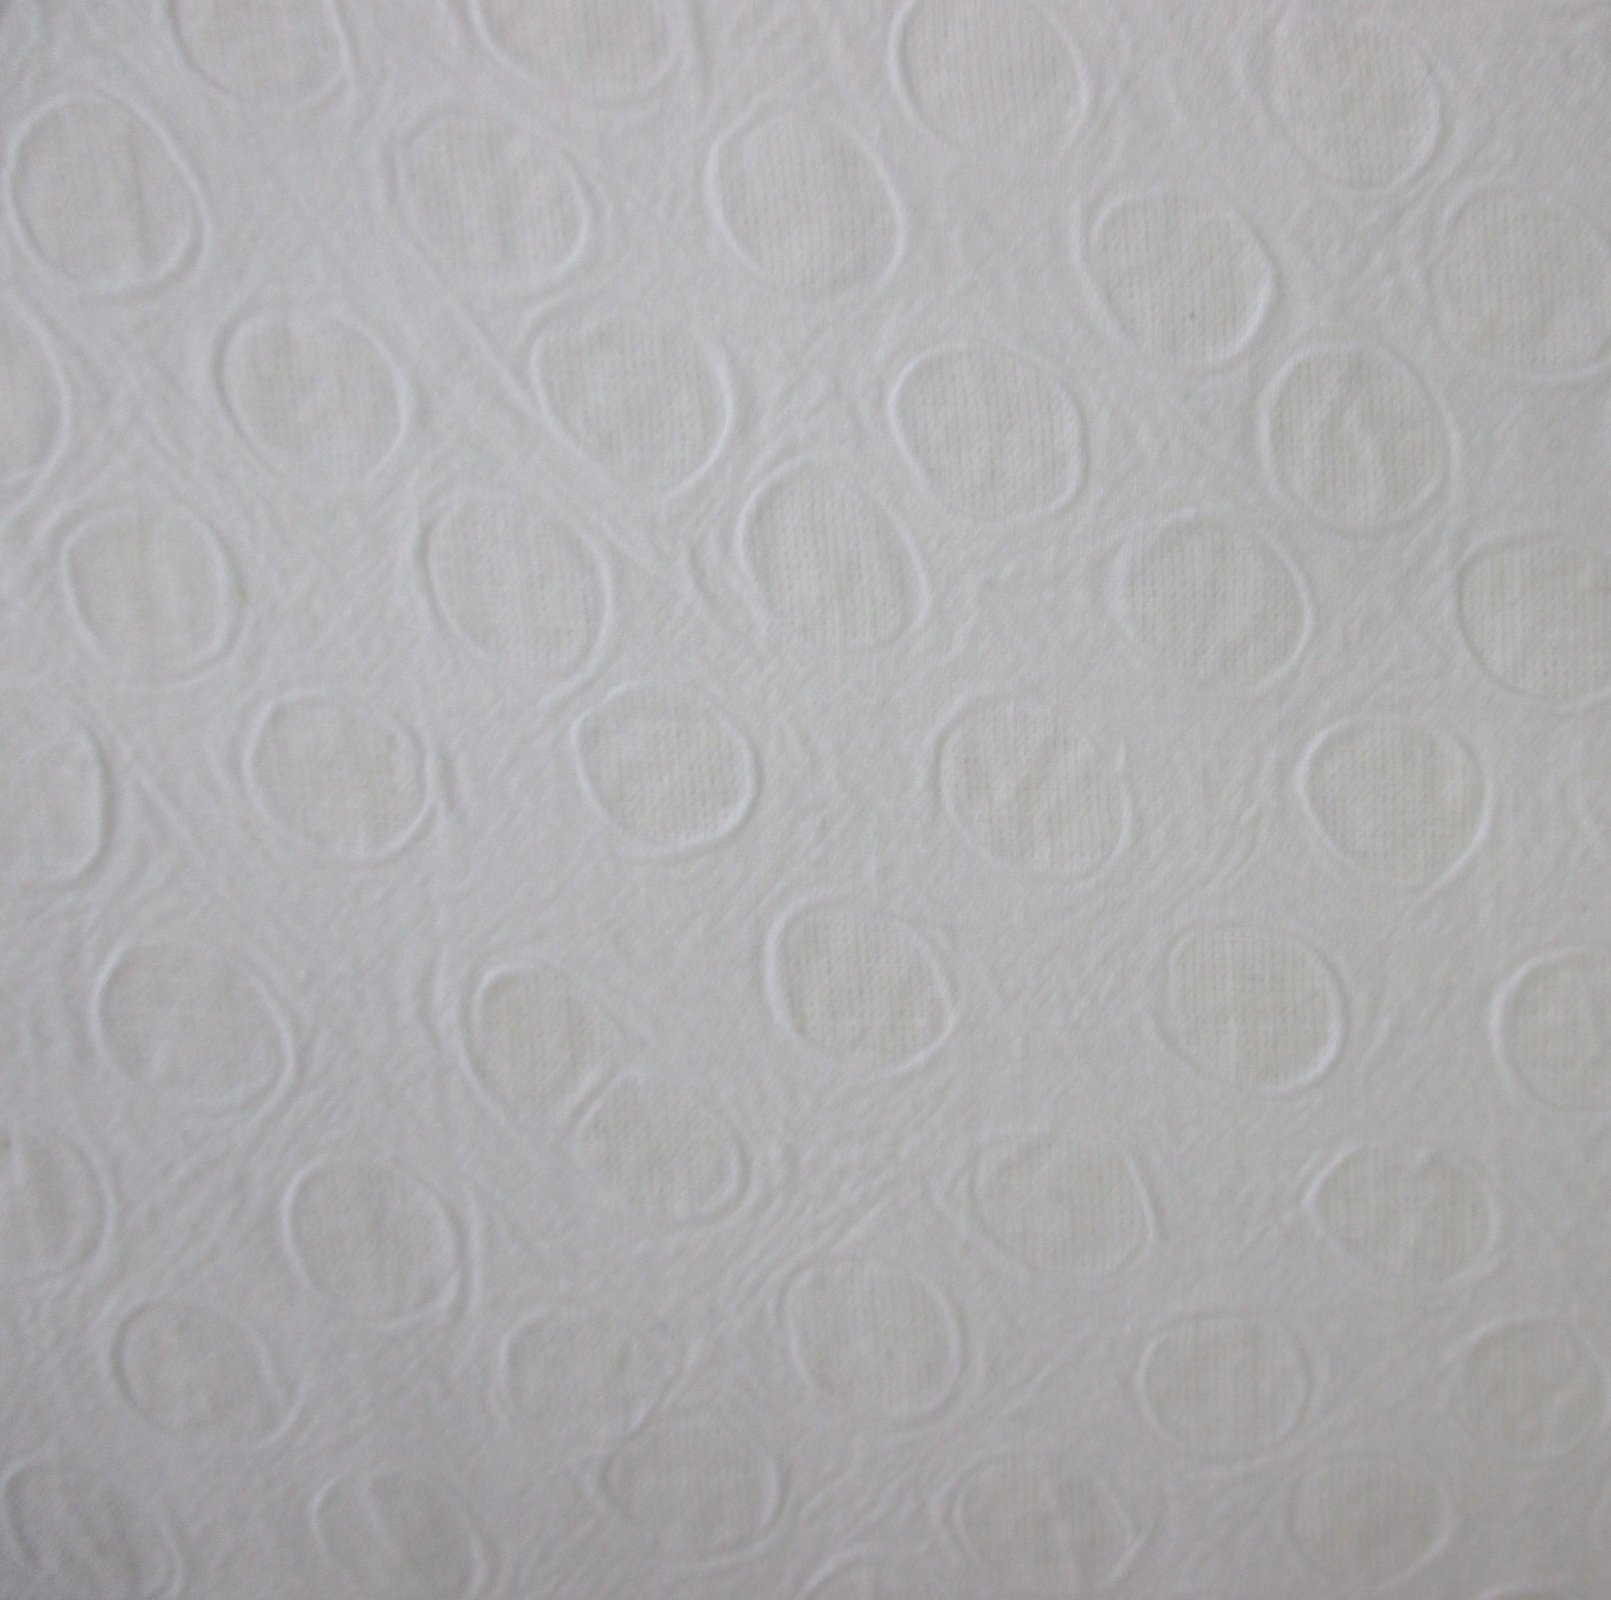 Embossed Cotton - White